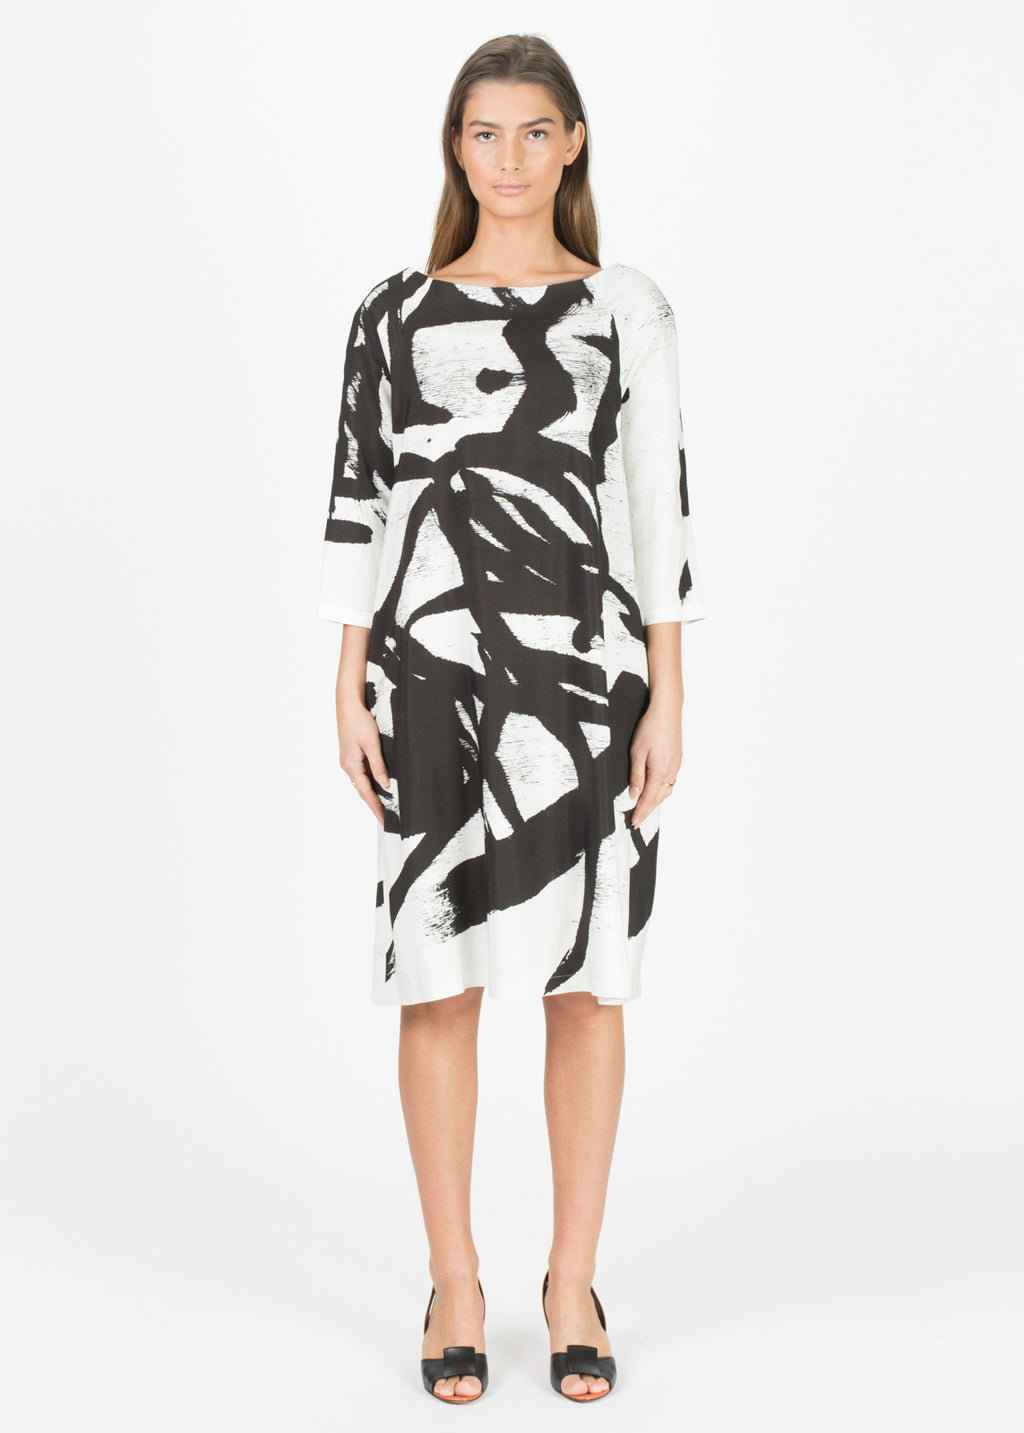 Dala Viscose Dress